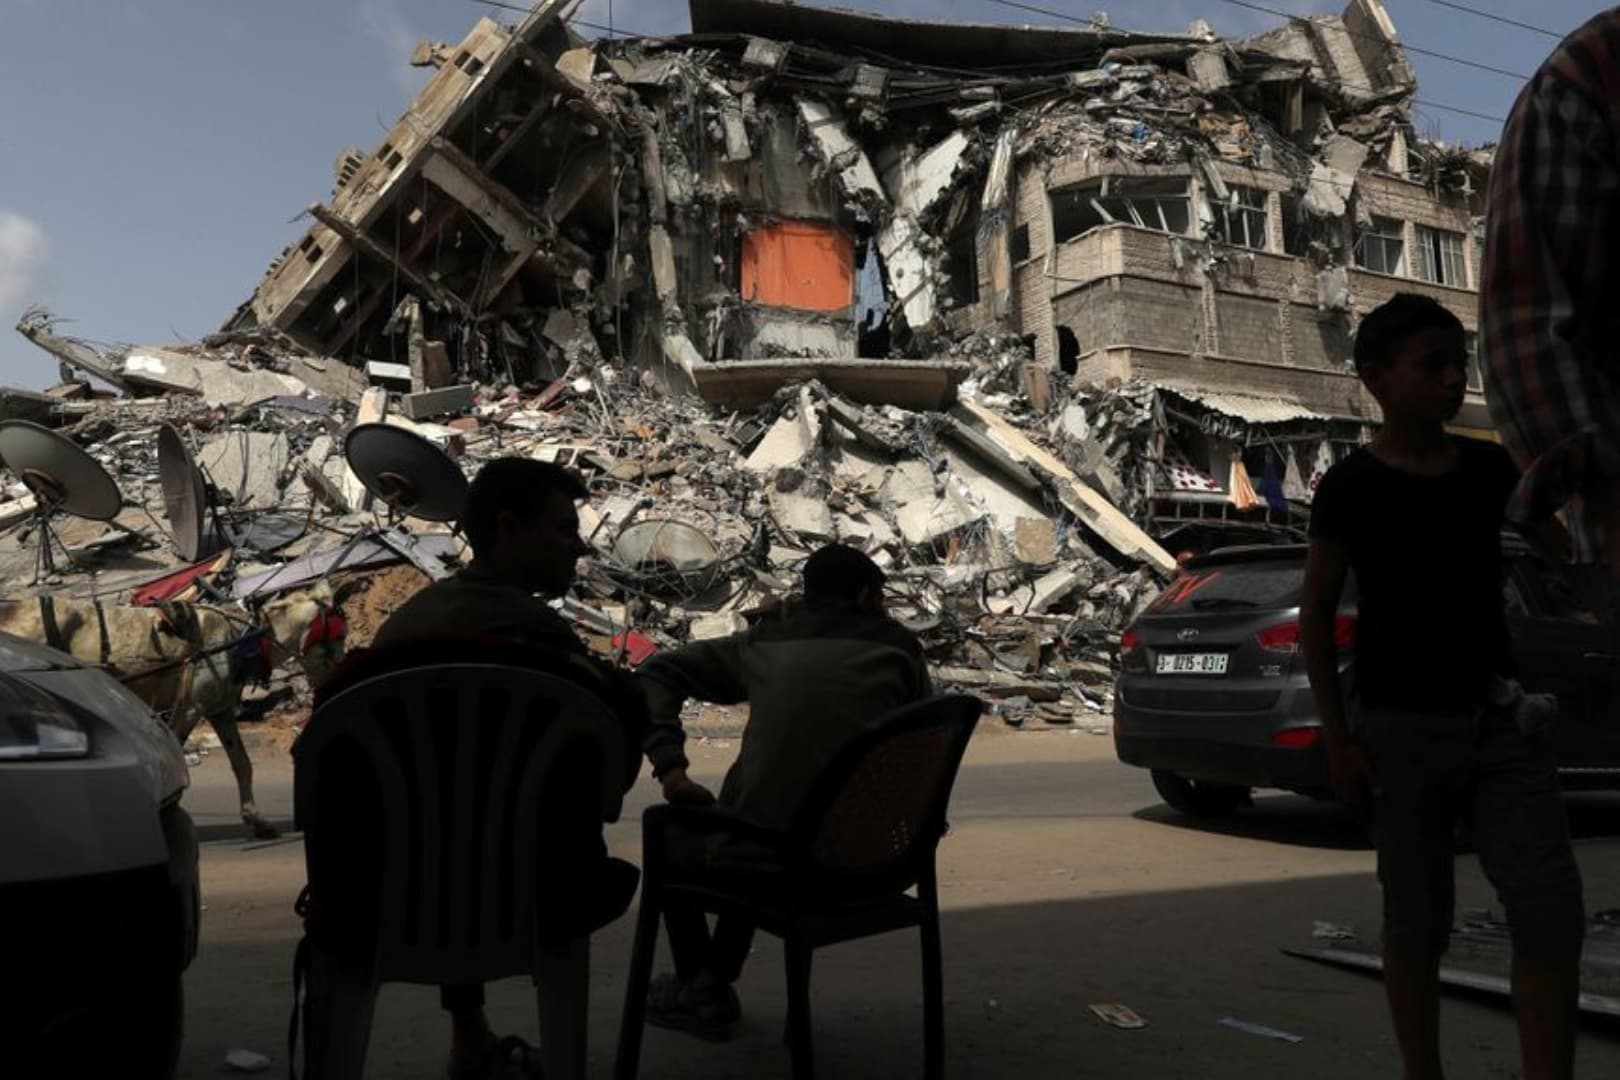 Palestinians sit near the ruins of a building destroyed in an Israeli air strike in the recent cross-border attacks by Israel on Gaza, May 21, 2021. — Reuters